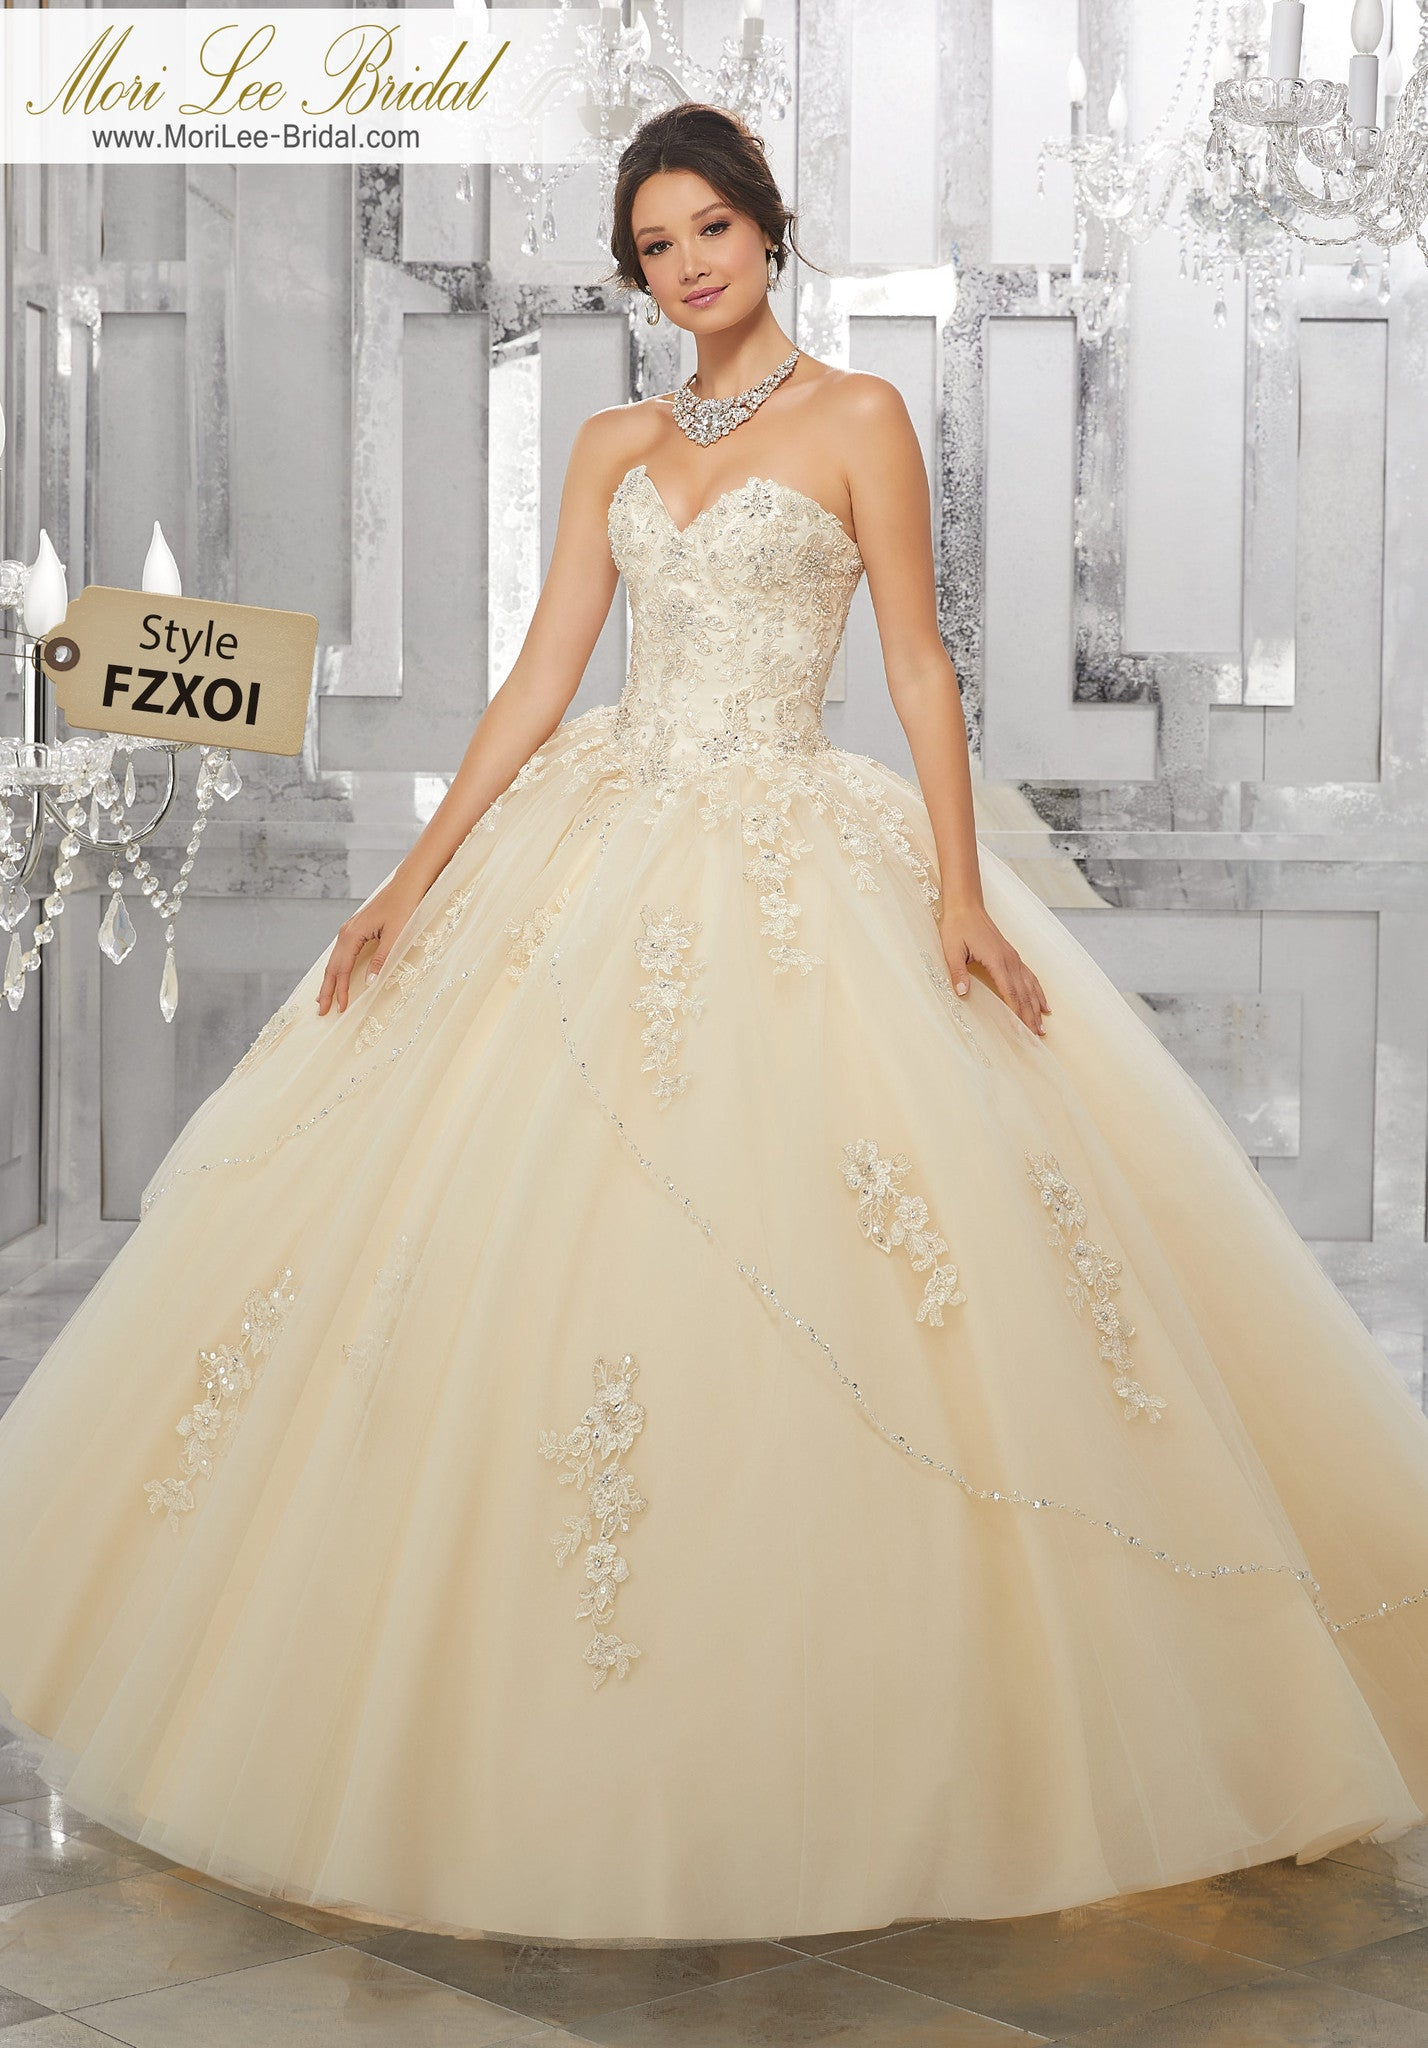 FZXOI* - Mori Lee Bridal